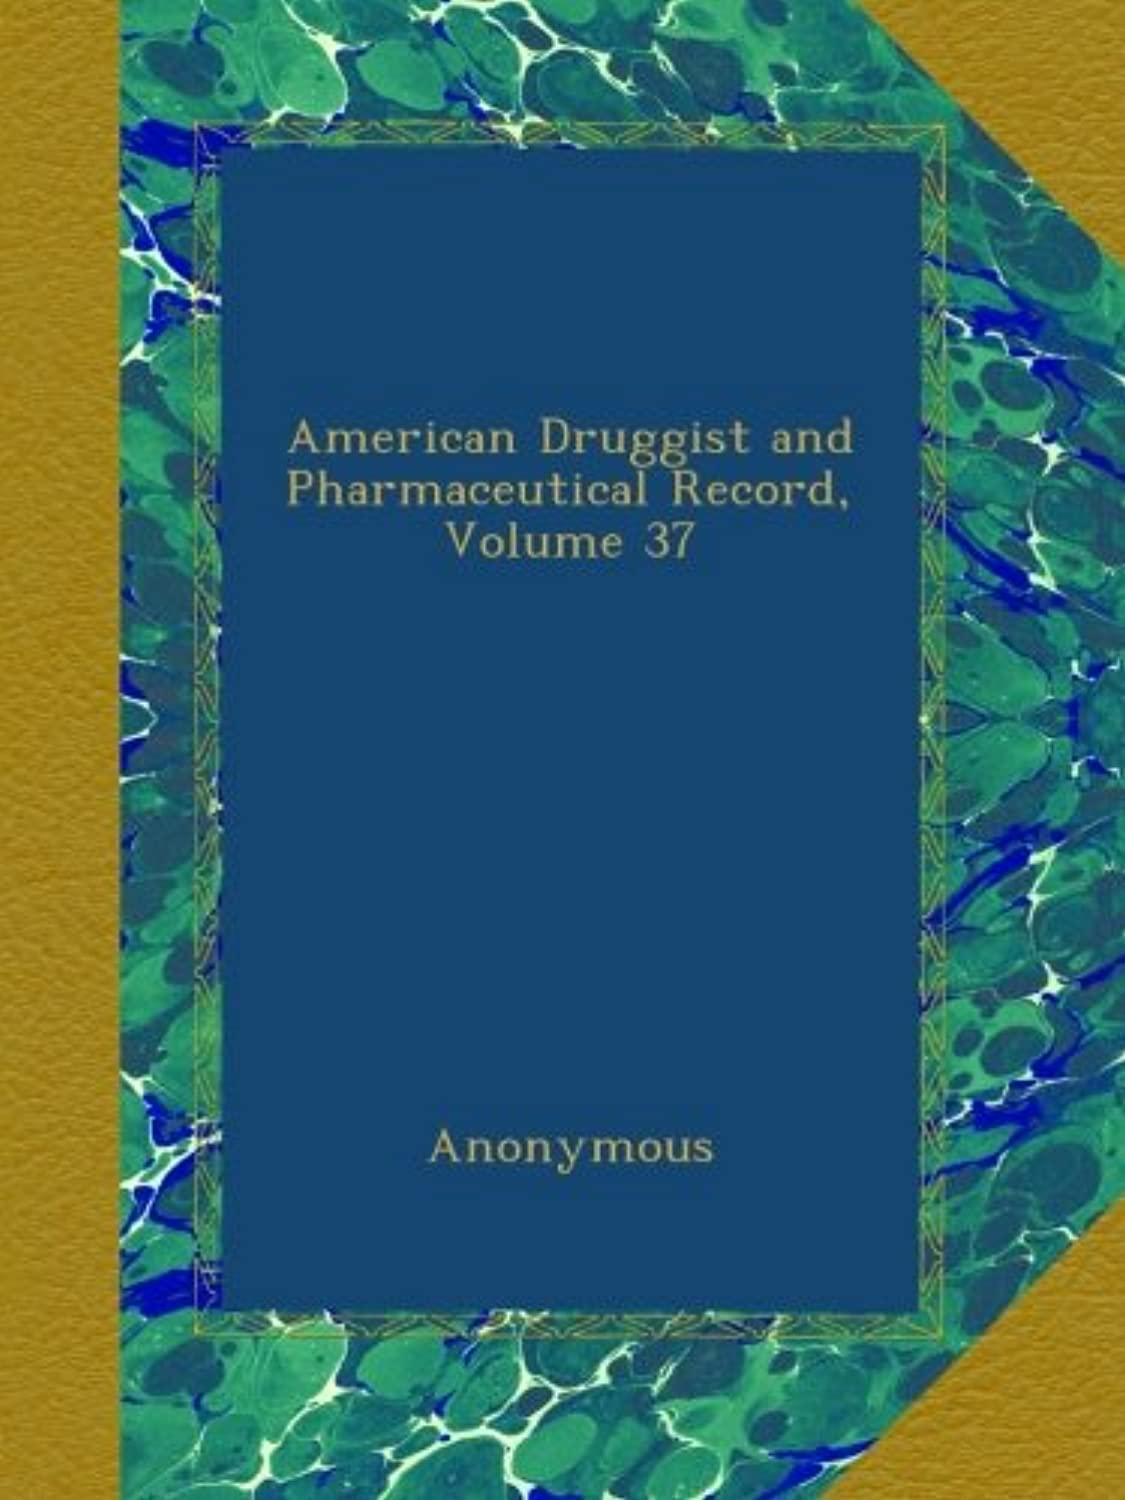 American Druggist and Pharmaceutical Record, Volume 37